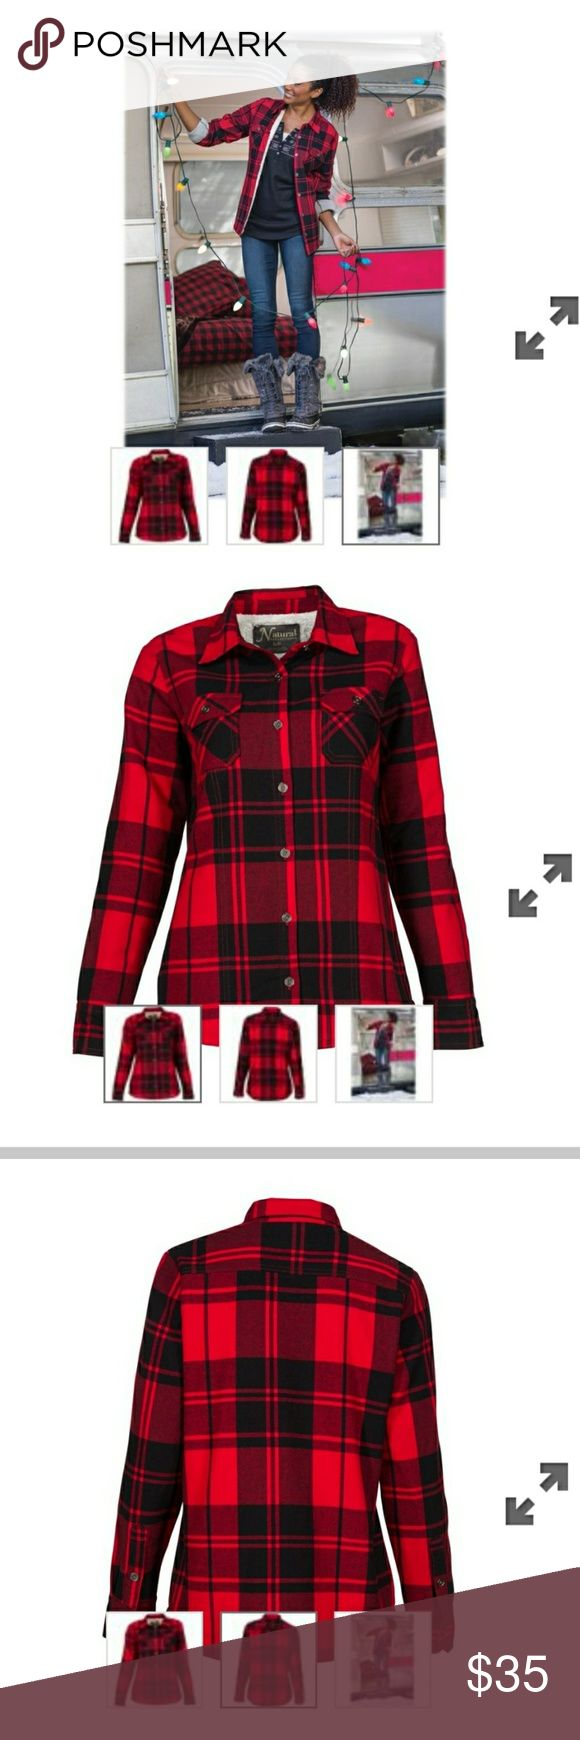 Natural Reflections Plaid sherpa lined jacket Natural Reflections® Flannel Shirt Jacket for women is lined with ultra-soft sherpa. Made of 100% cotton, this flannel jacket features a button-up front, 2 button-flap chest pockets, and princess seams for a figure-flattering fit. The sleeves have a comfortable lining of polyester taffeta. Machine wash. Imported.  Shell: 100% cottonLining: 100% polyesterButton-down front2 button-flap chest pocketsPrincess seams  Only worn a few times, jackets run…